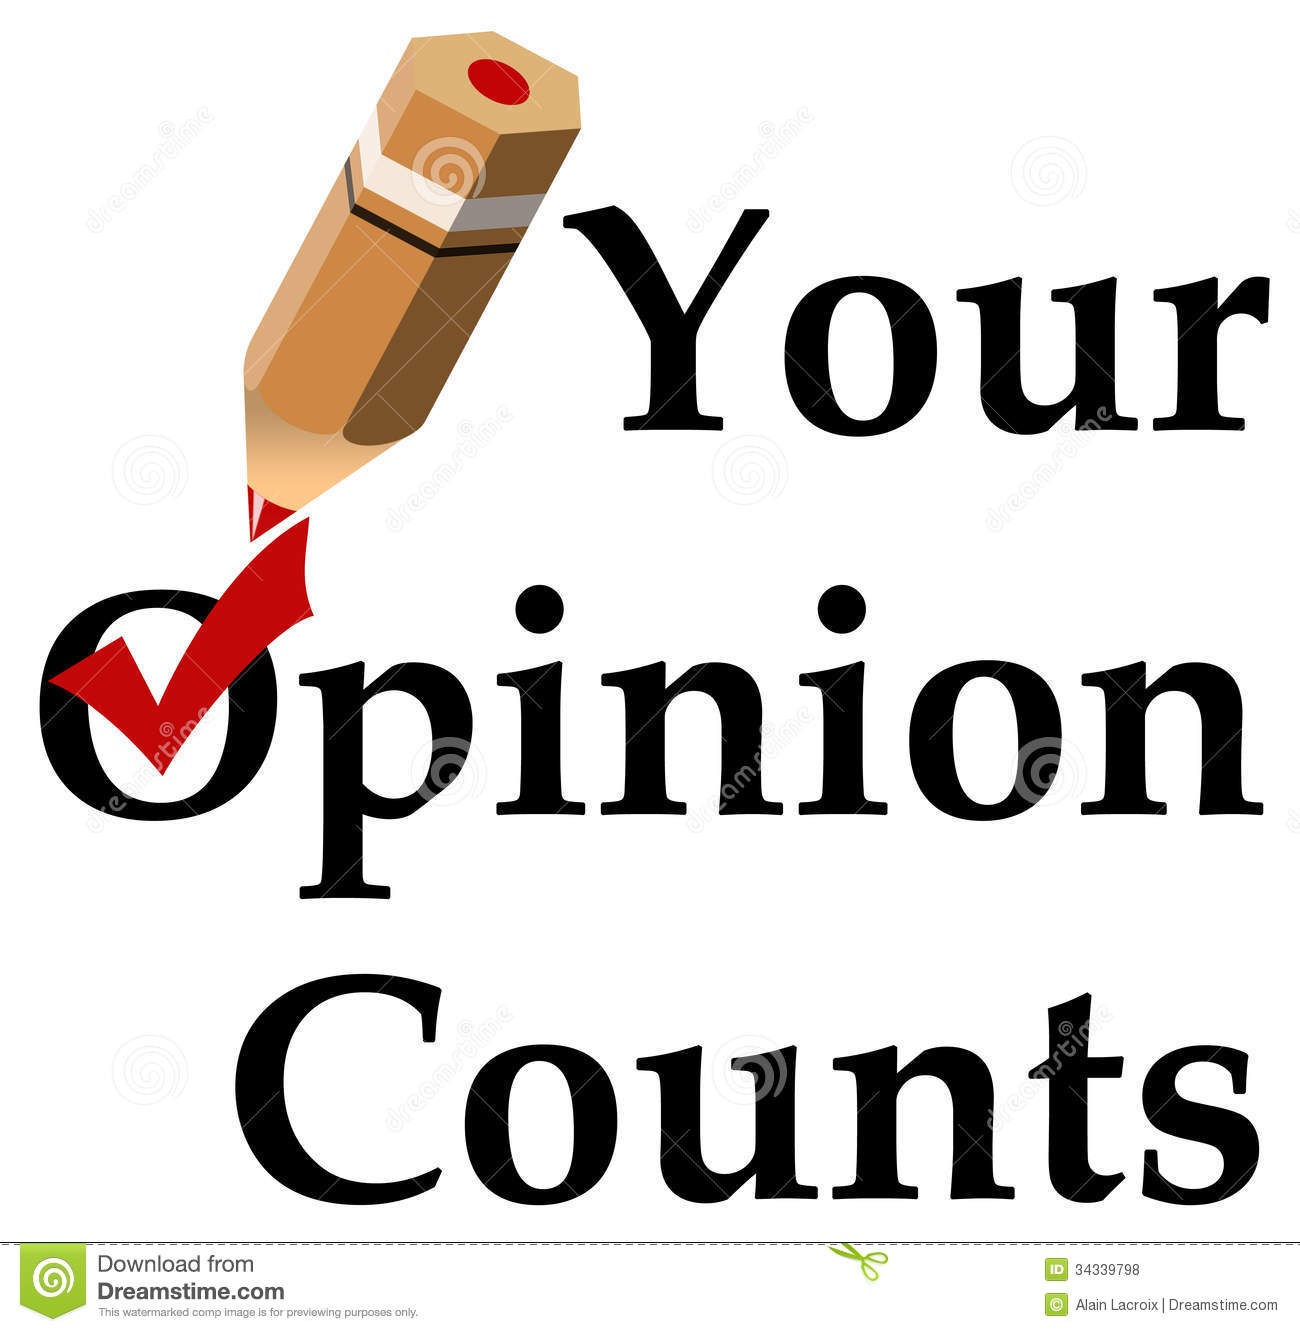 Your opinion counts, in politics, in marketing research.